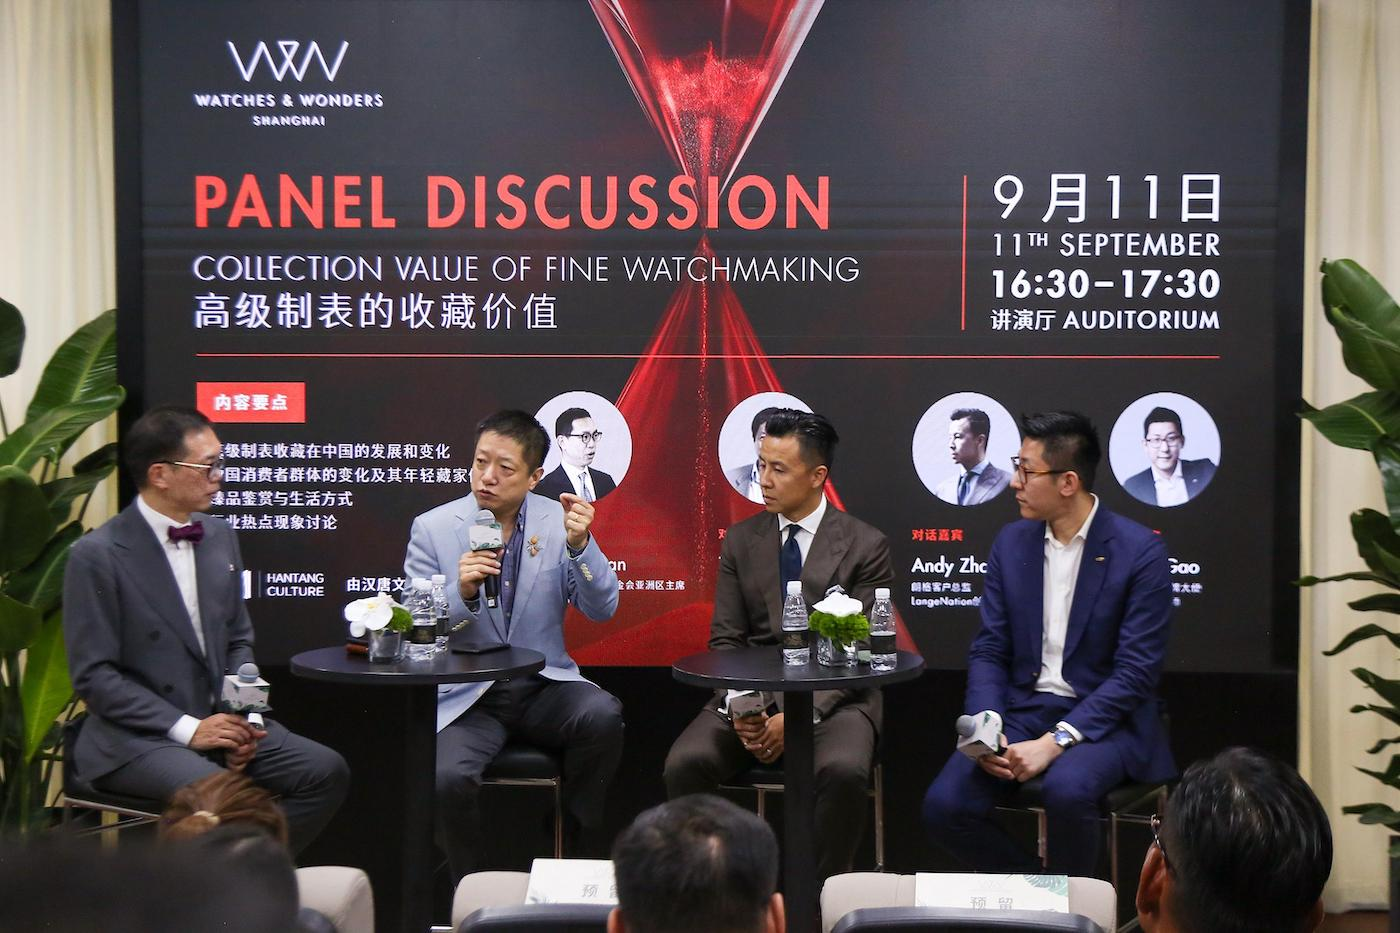 Panel discussion moderated by Carson Chan (FHH)